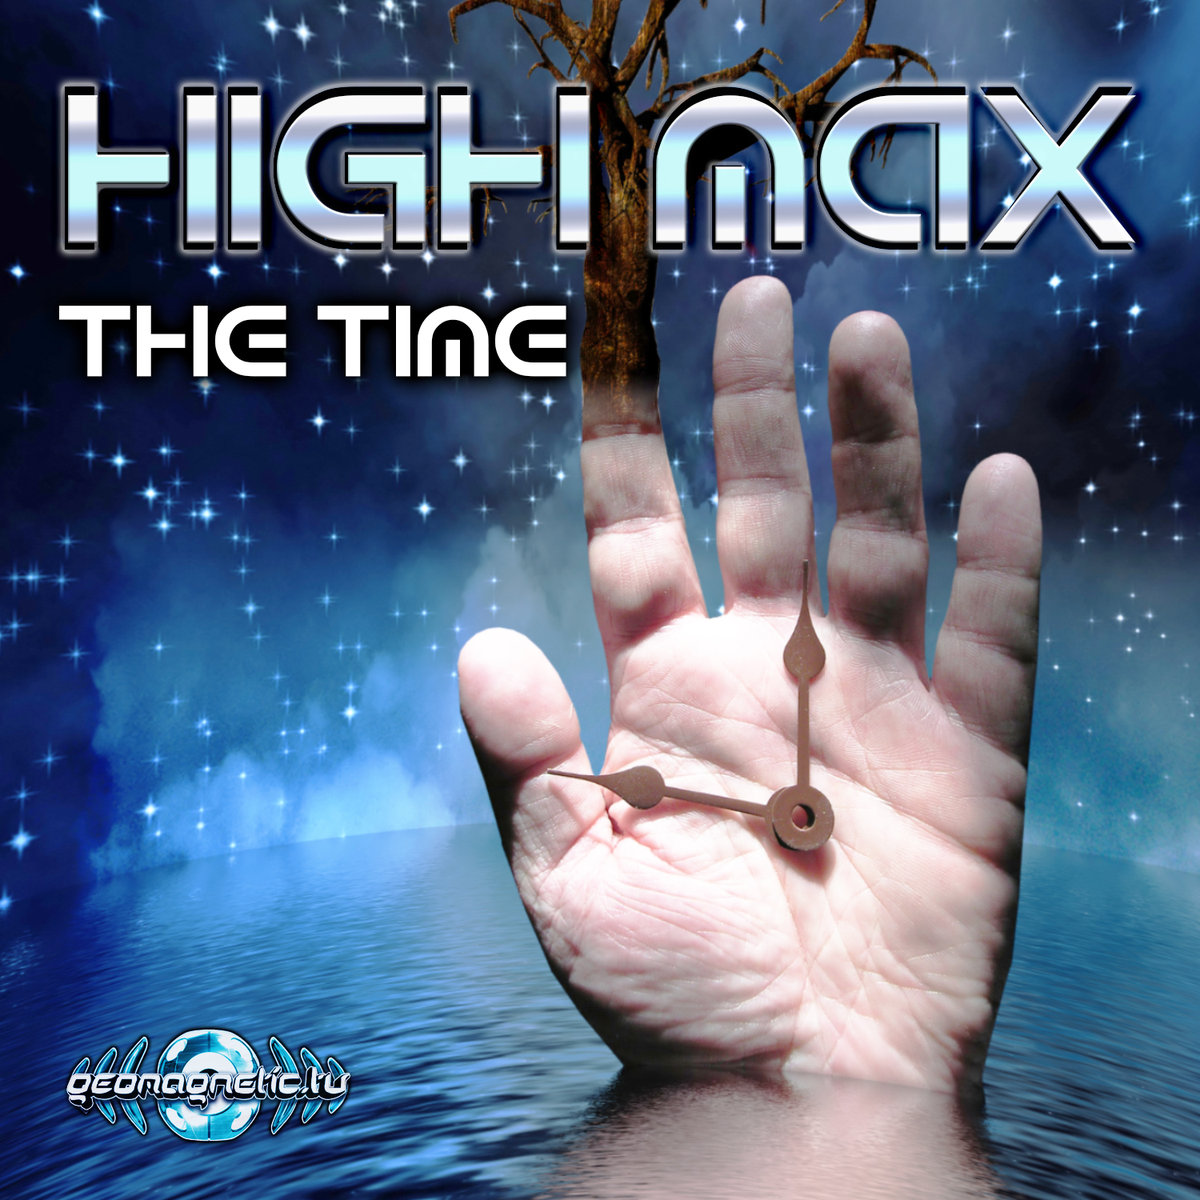 High Max - Safari @ 'The Time' album (electronic, high max)